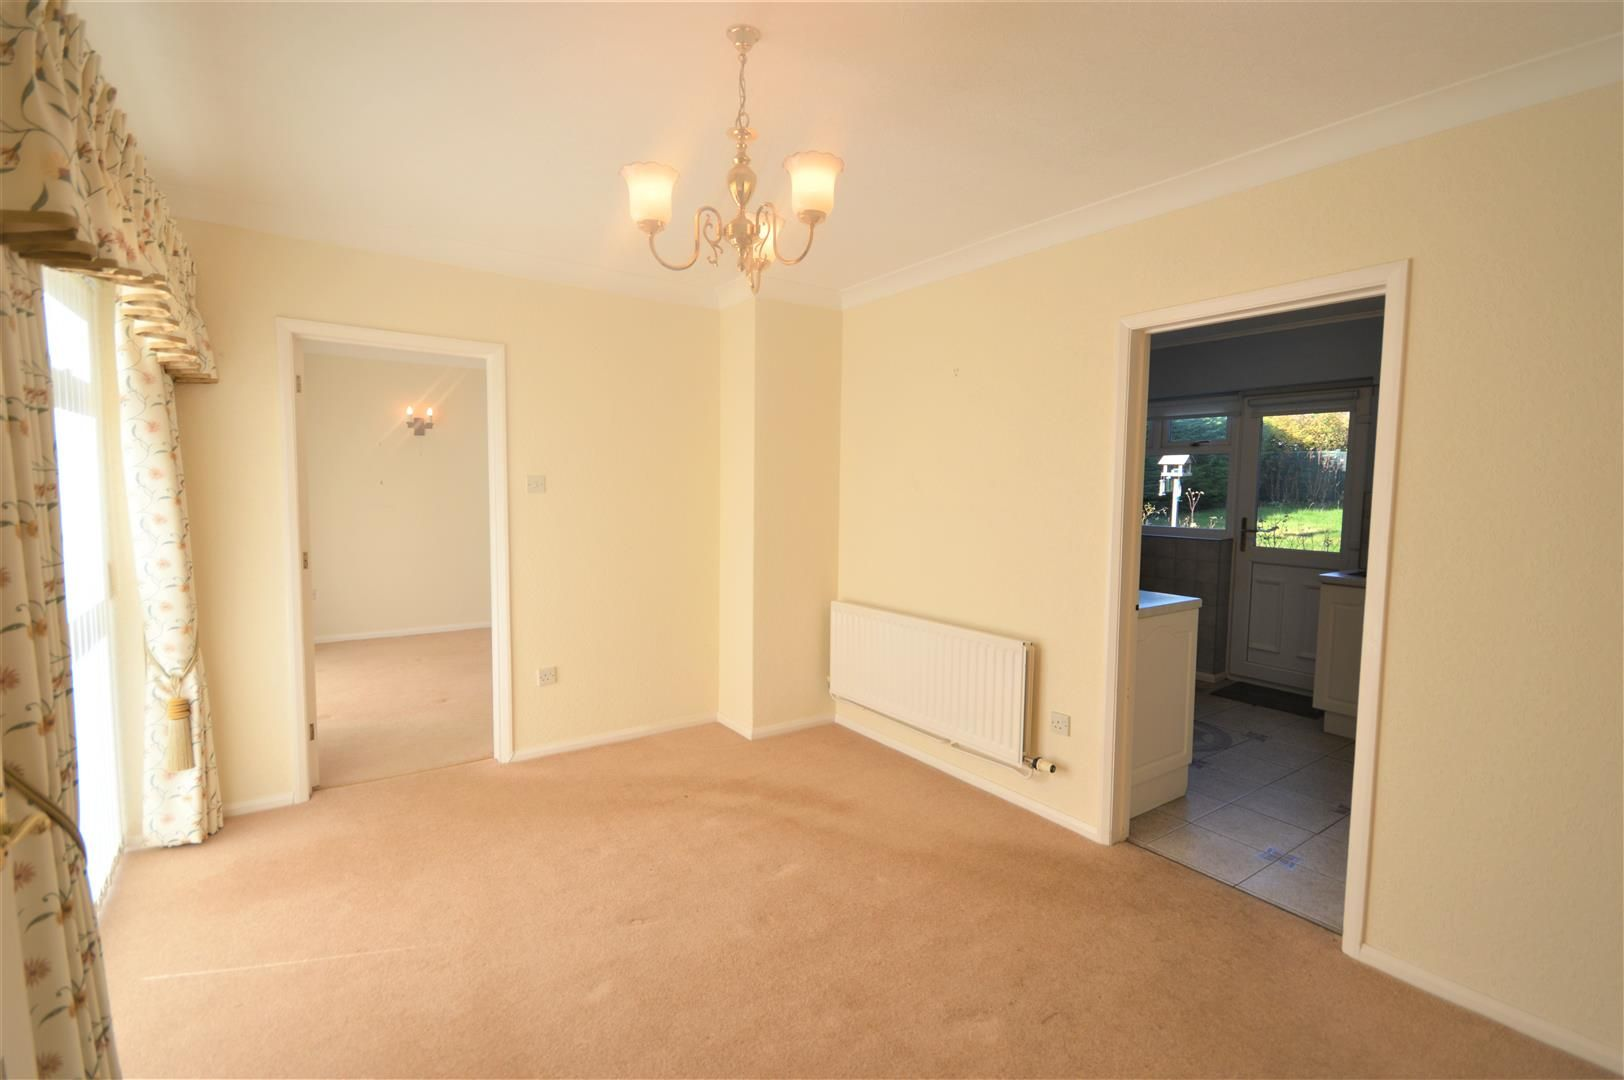 3 bed detached-bungalow for sale in Leominster  - Property Image 5